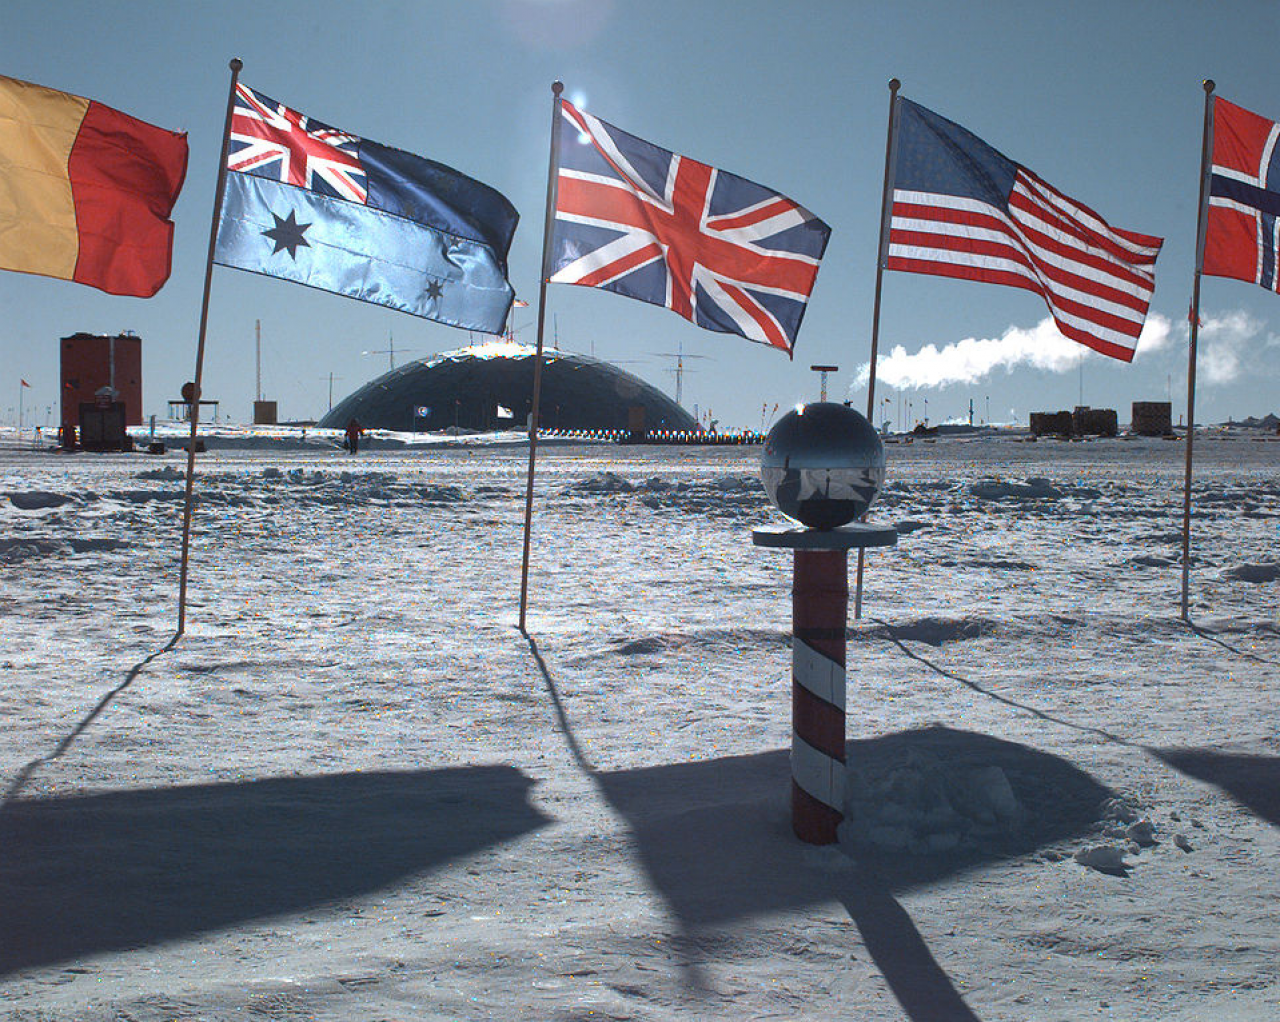 The ceremonial South Pole at the Amundsen-Scott Station.